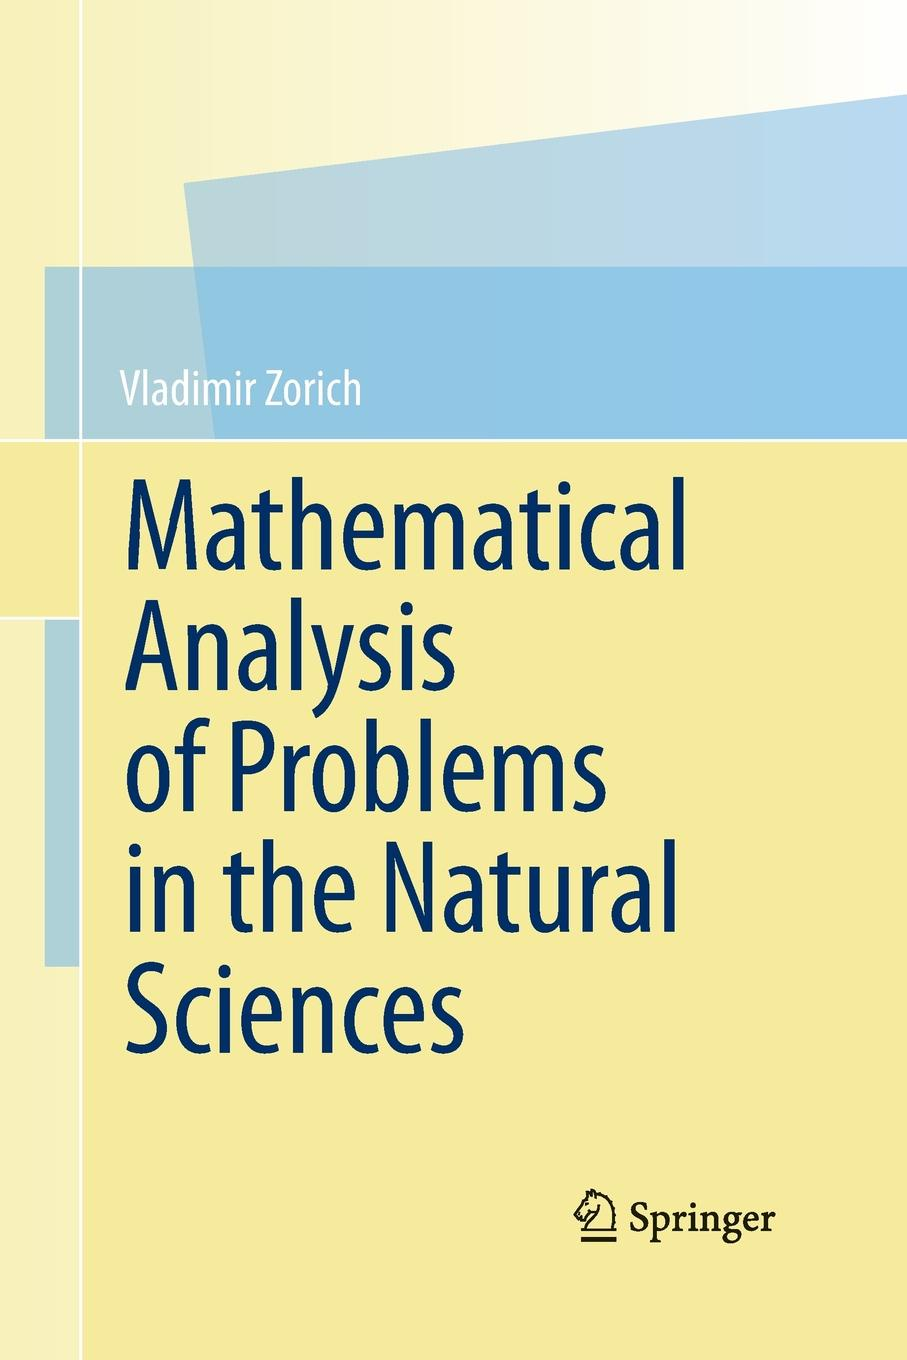 Vladimir Zorich, Gerald G. Gould Mathematical Analysis of Problems in the Natural Sciences charles manski identification problems in the social sciences paper